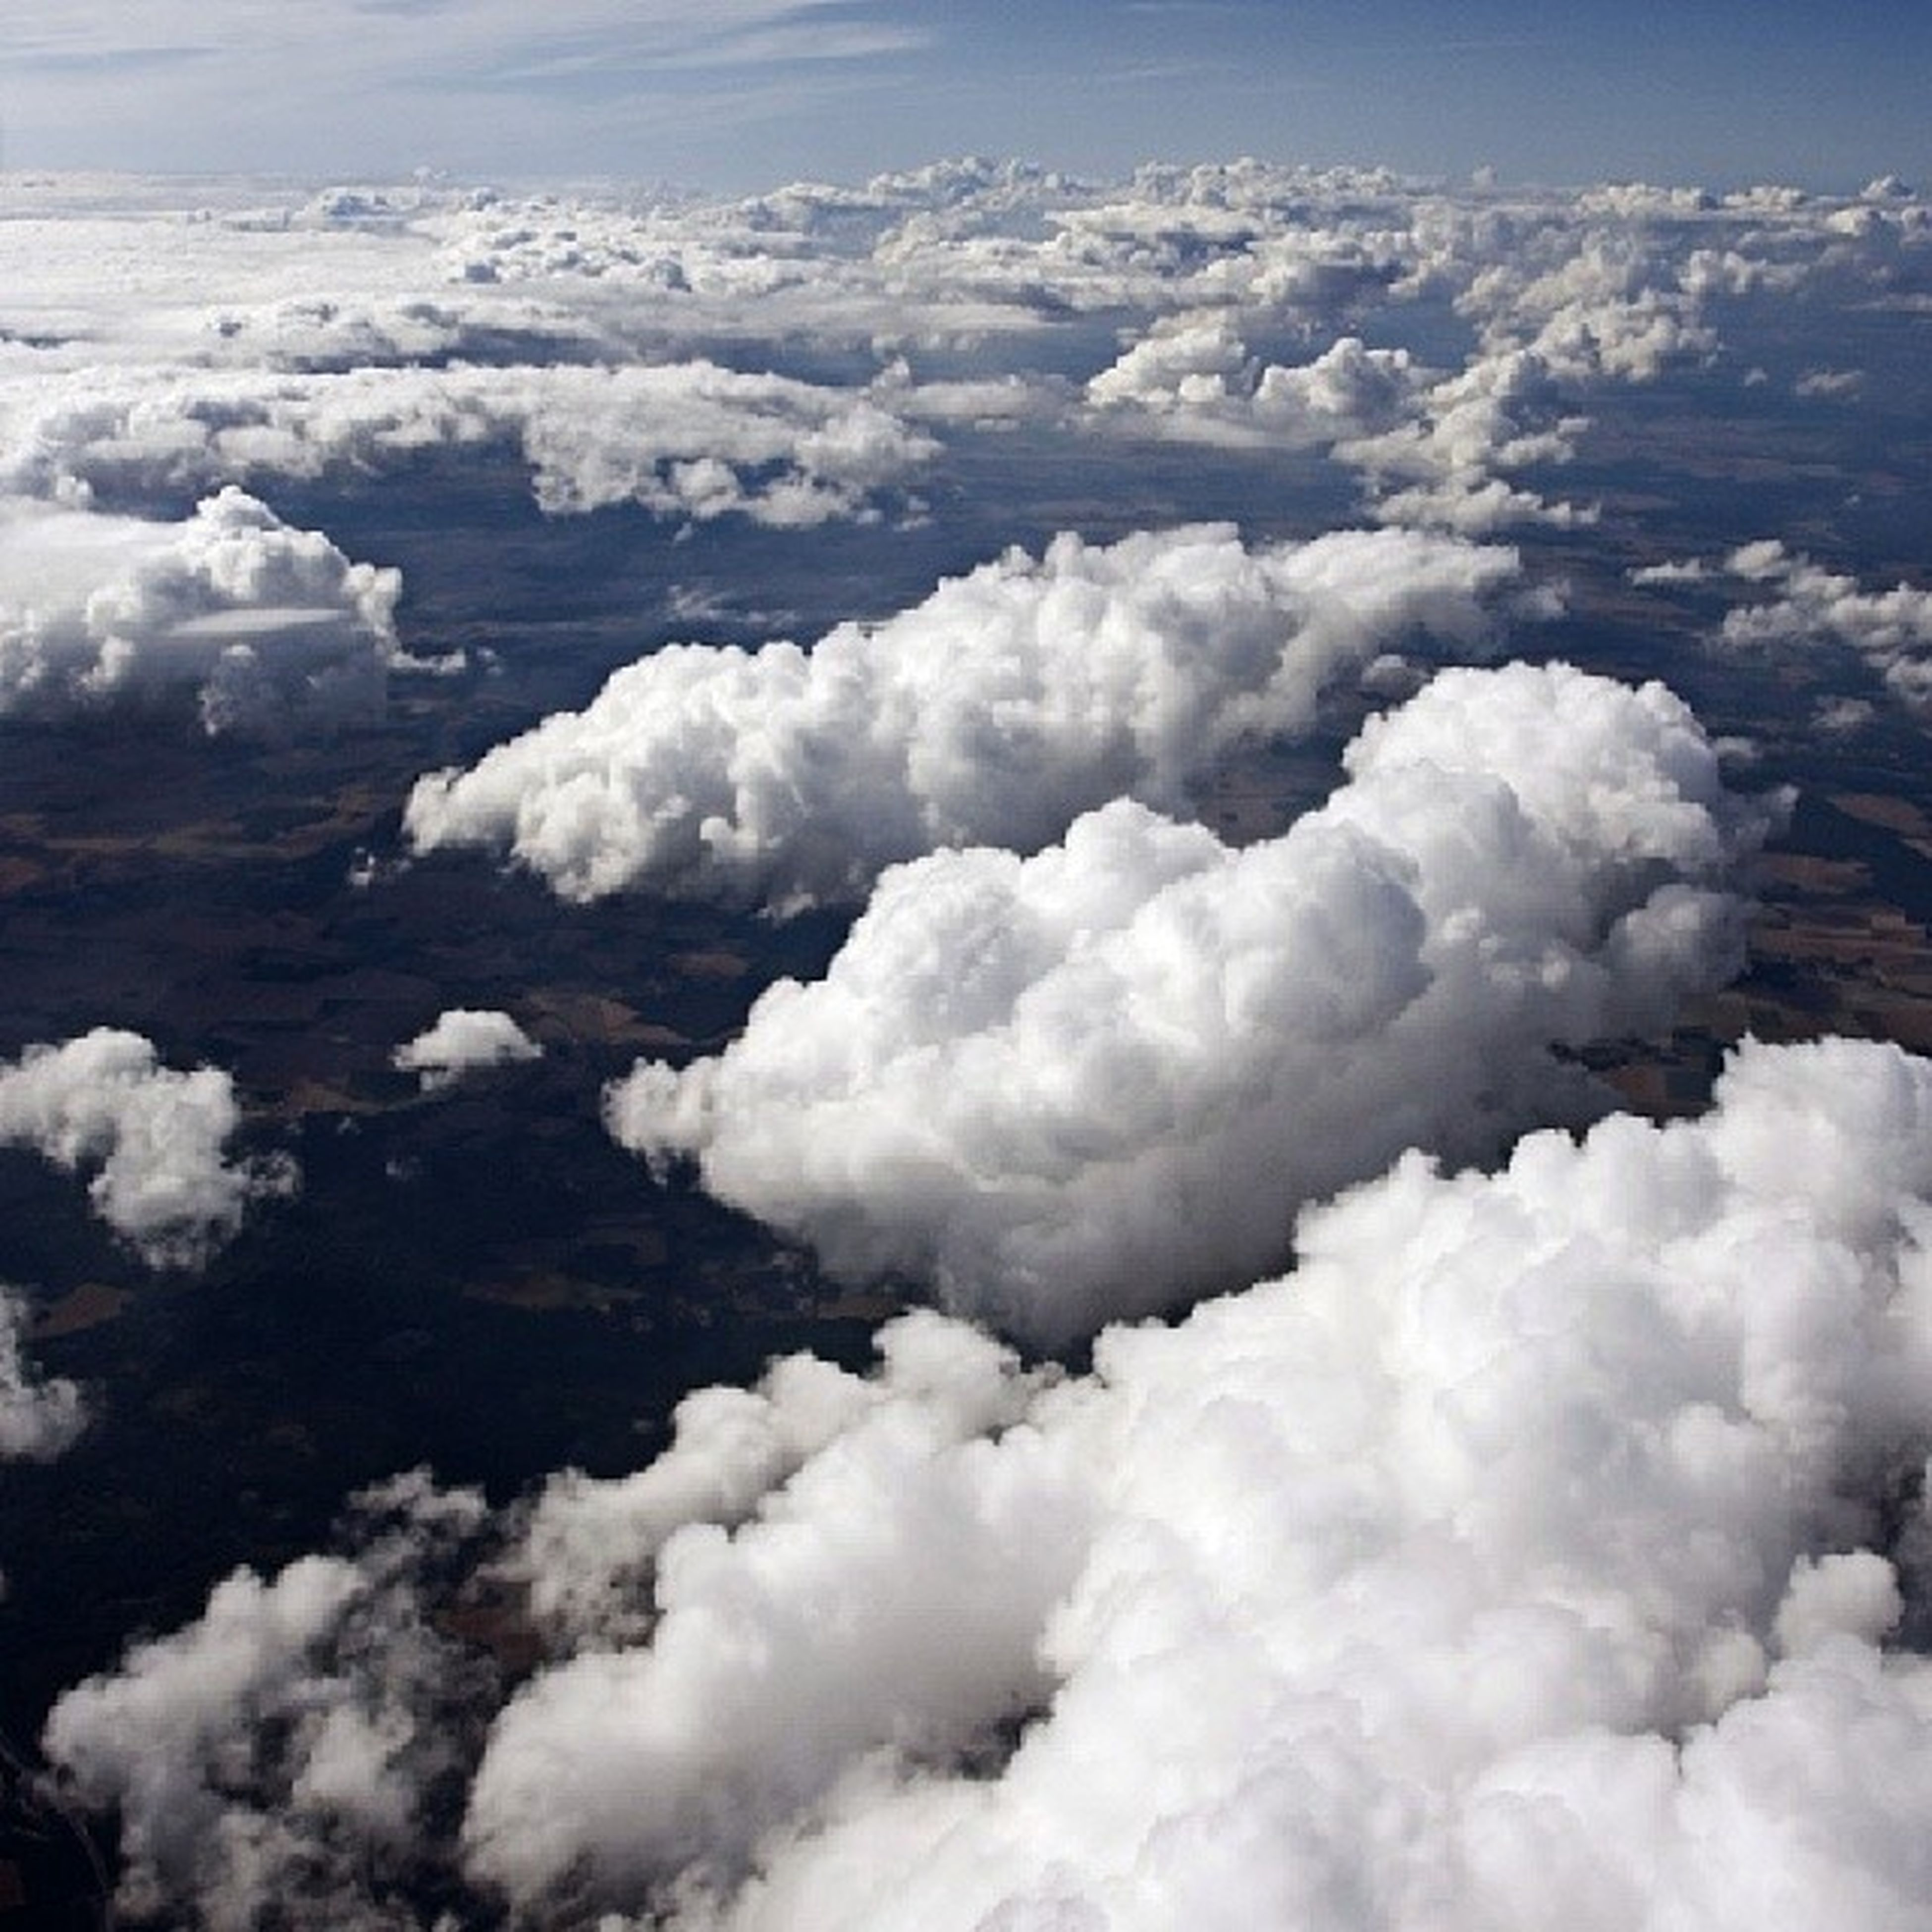 beauty in nature, white color, cloudscape, scenics, nature, sky, backgrounds, sky only, tranquility, tranquil scene, cloud - sky, aerial view, full frame, white, softness, weather, fluffy, cloudy, idyllic, cloud